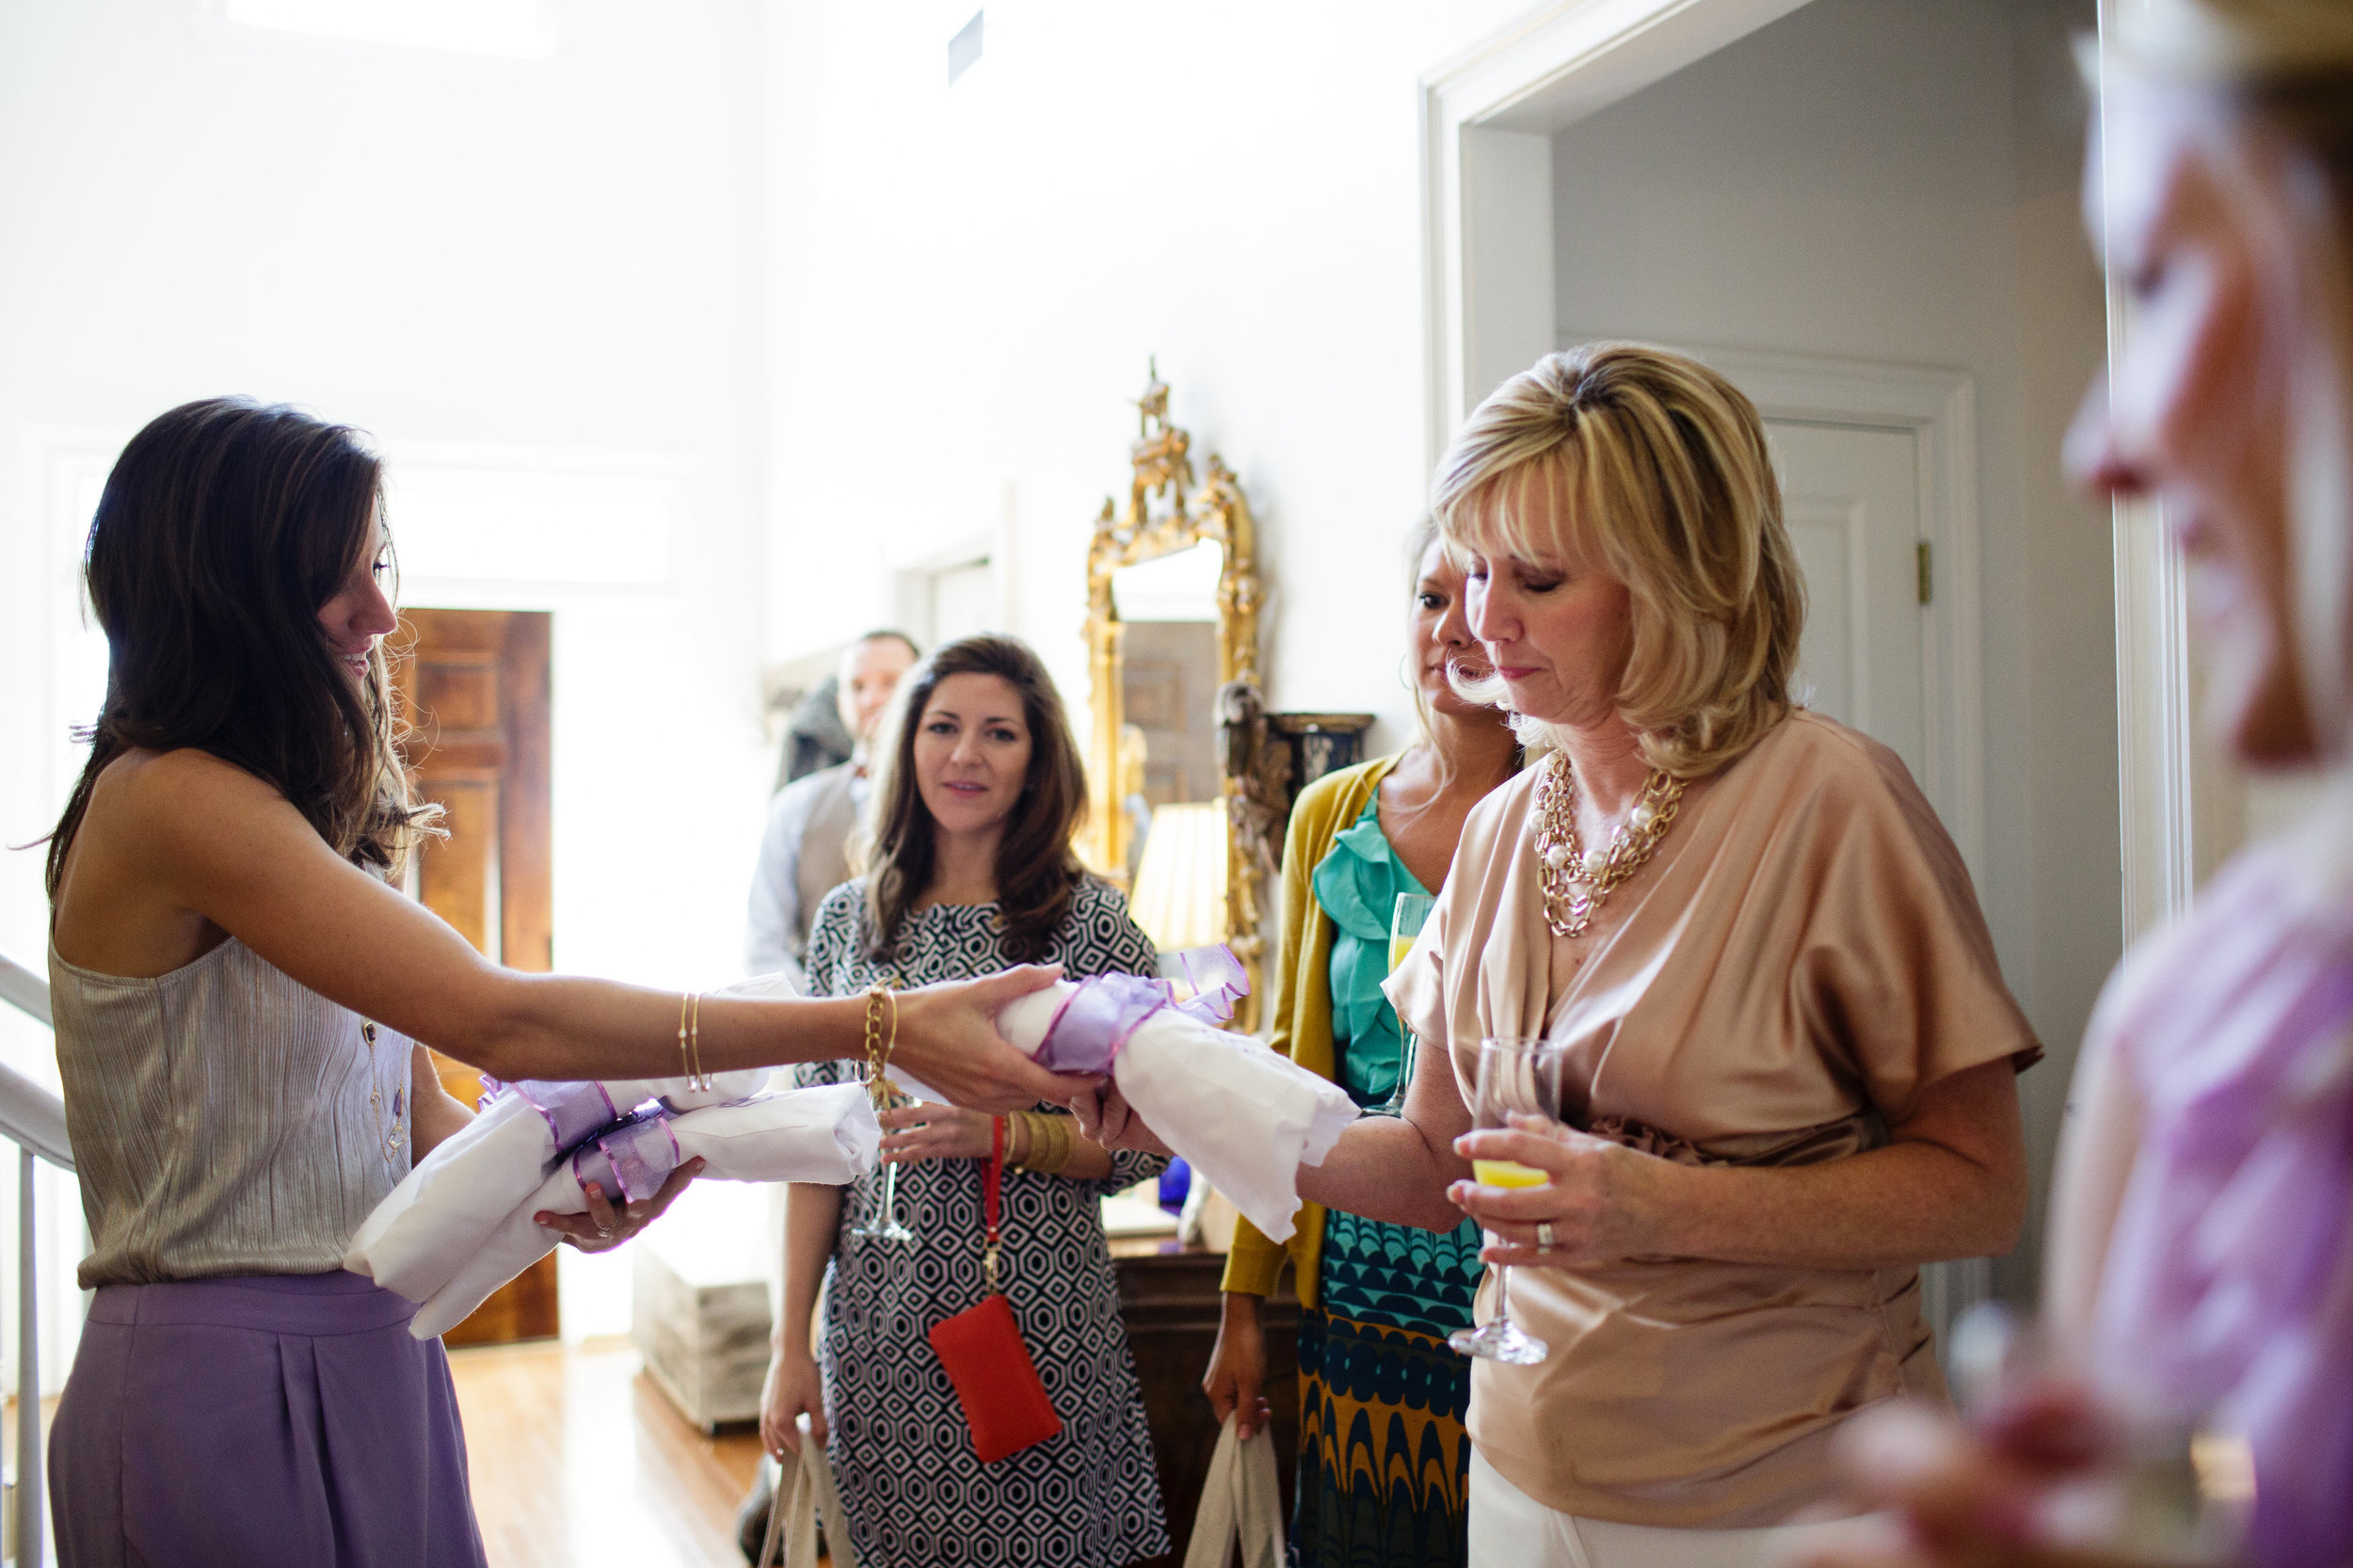 I love the look on my precious mom's face in this moment when I gave her the monogrammed shirt I had made for her.